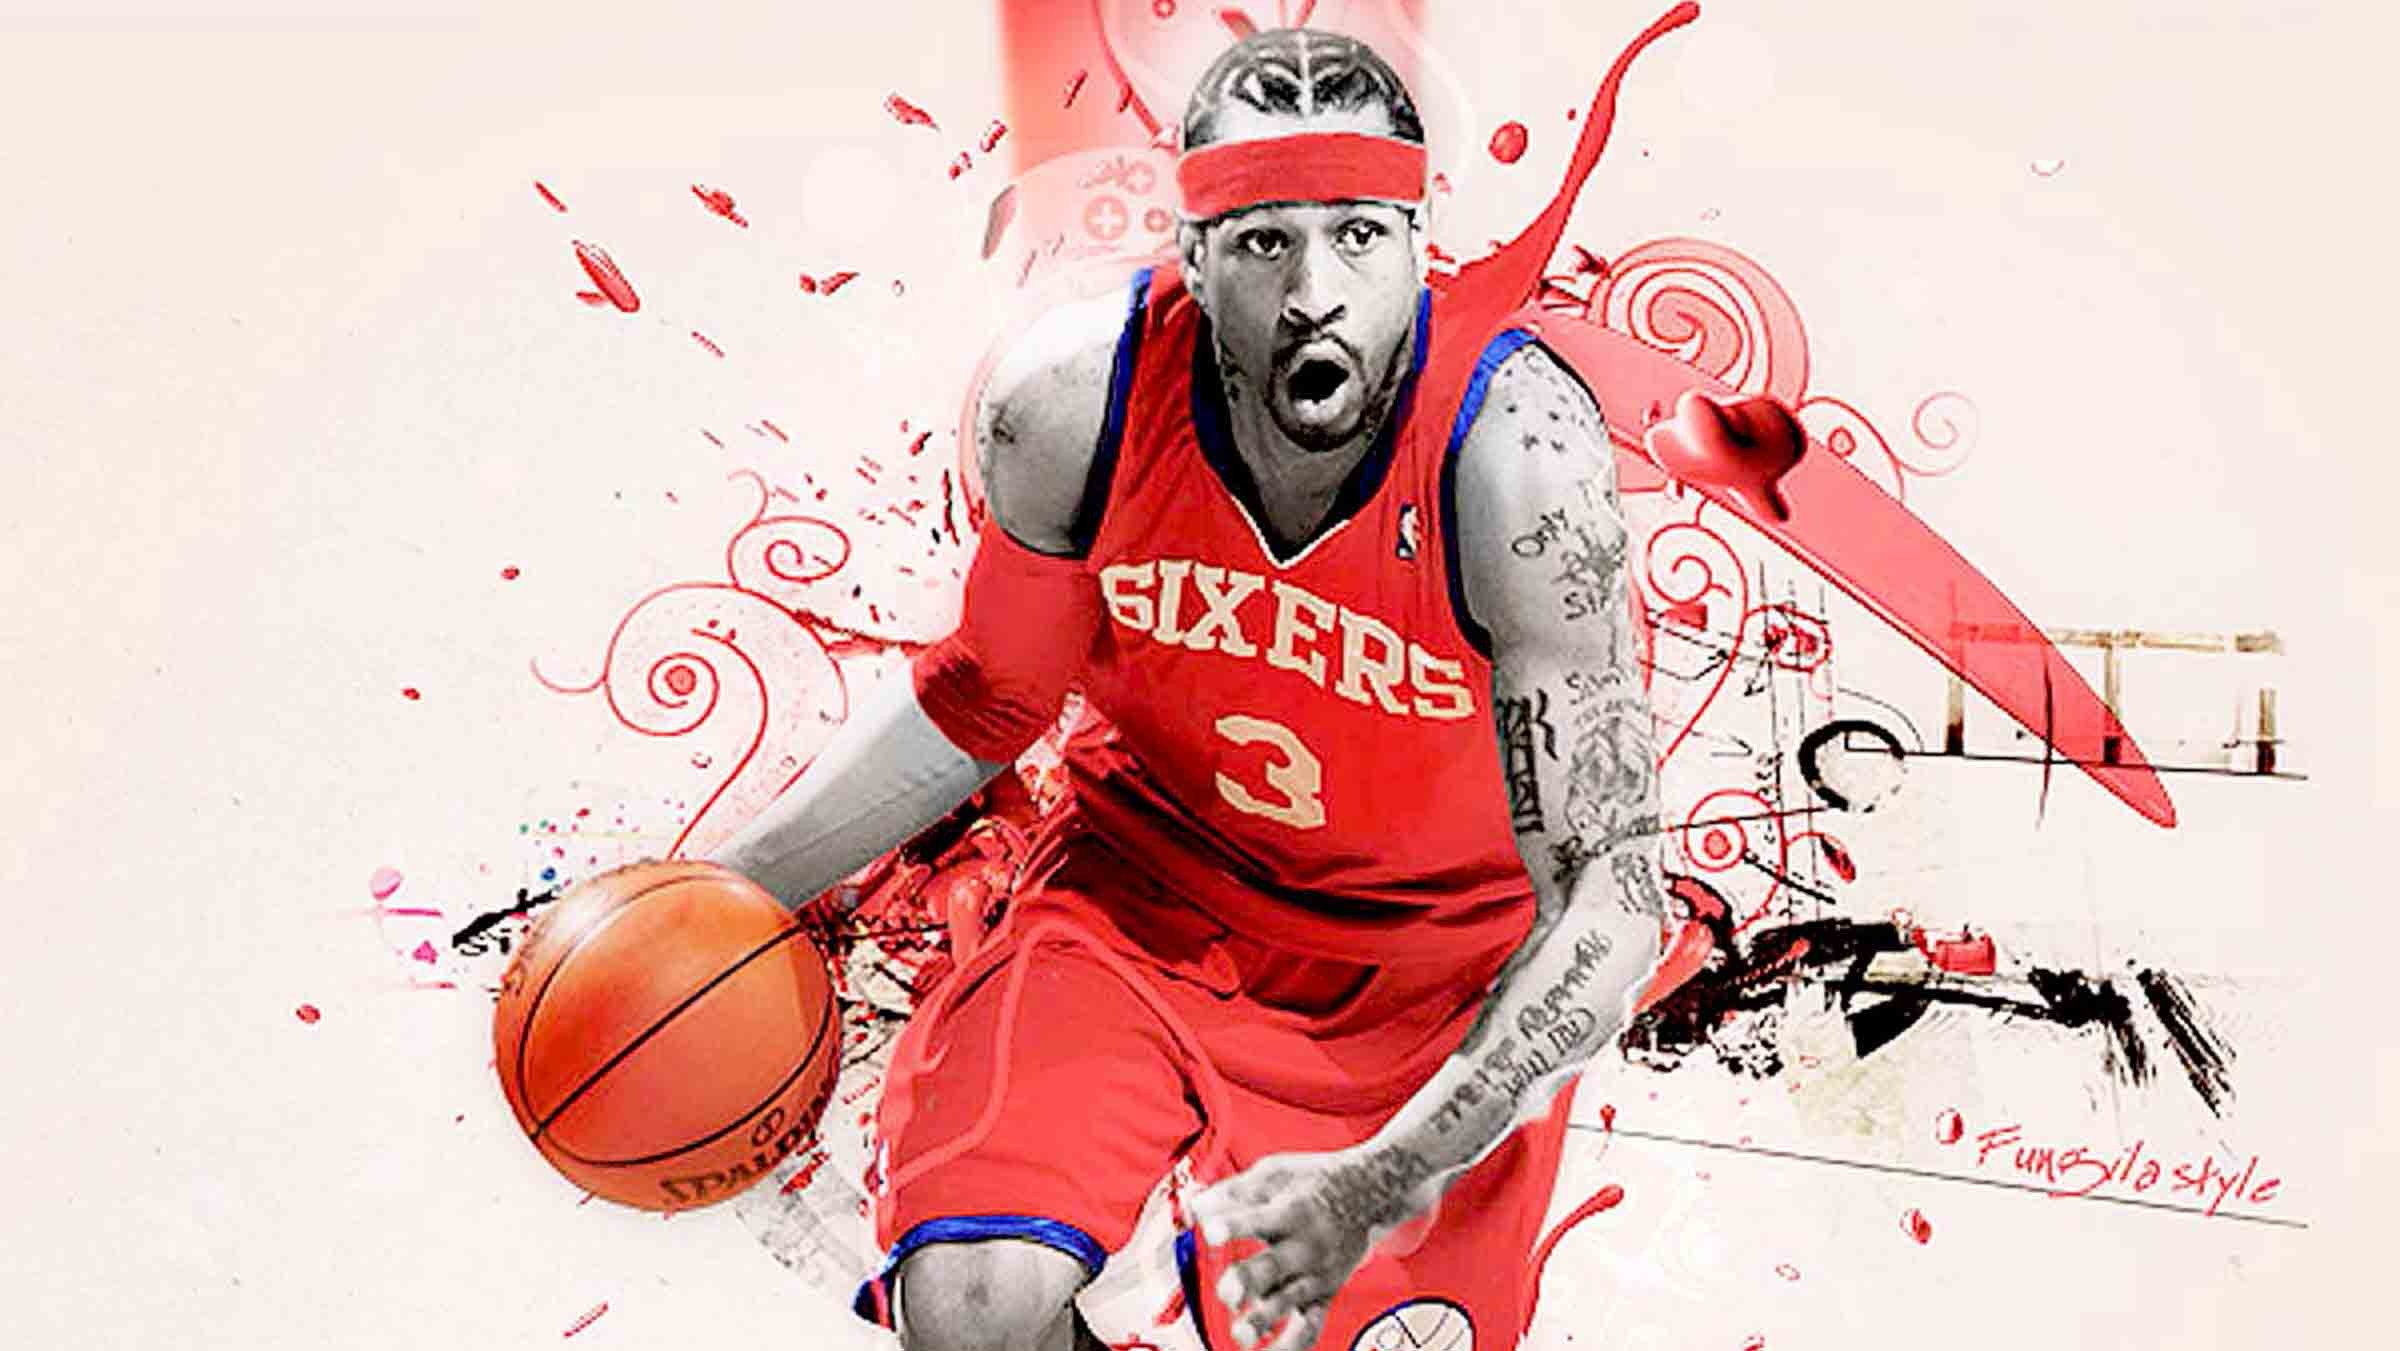 Allen Iverson Wallpaper 1 Download Free Awesome Backgrounds For